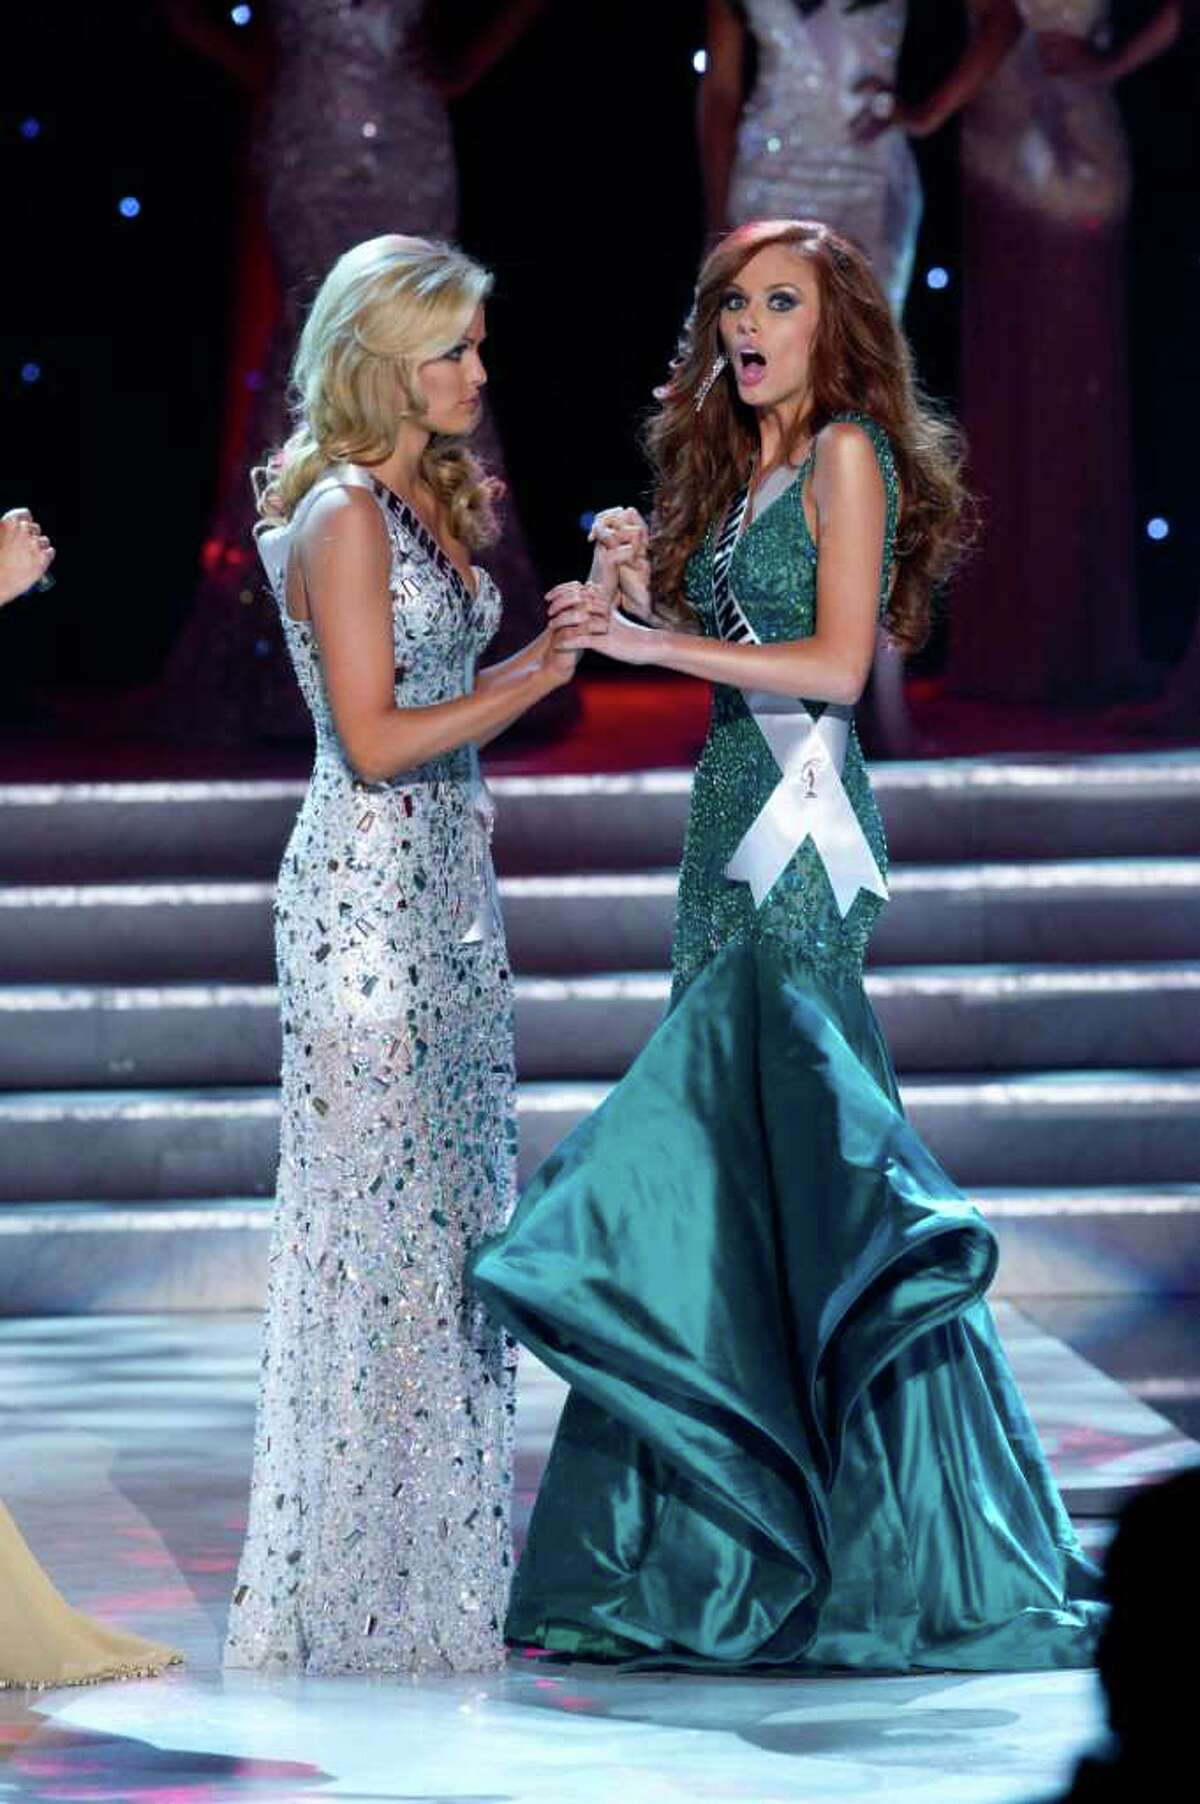 Miss Tennessee USA 2011, Ashley Durham is first runner up as Miss California USA 2011, Alyssa Campanella, is the winner of the 2011 MISS USA® Competition. She celebrates on stage after the crowning, which was broadcast LIVE on NBC from the Planet Hollywood Resort & Casino Theatre for the Performing Arts, in Las Vegas, Nevada on Sunday, June 19, 2011. The winner will compete in the 2011 MISS UNIVERSE® Pageant in Sao Paulo, Brazil on September 12.